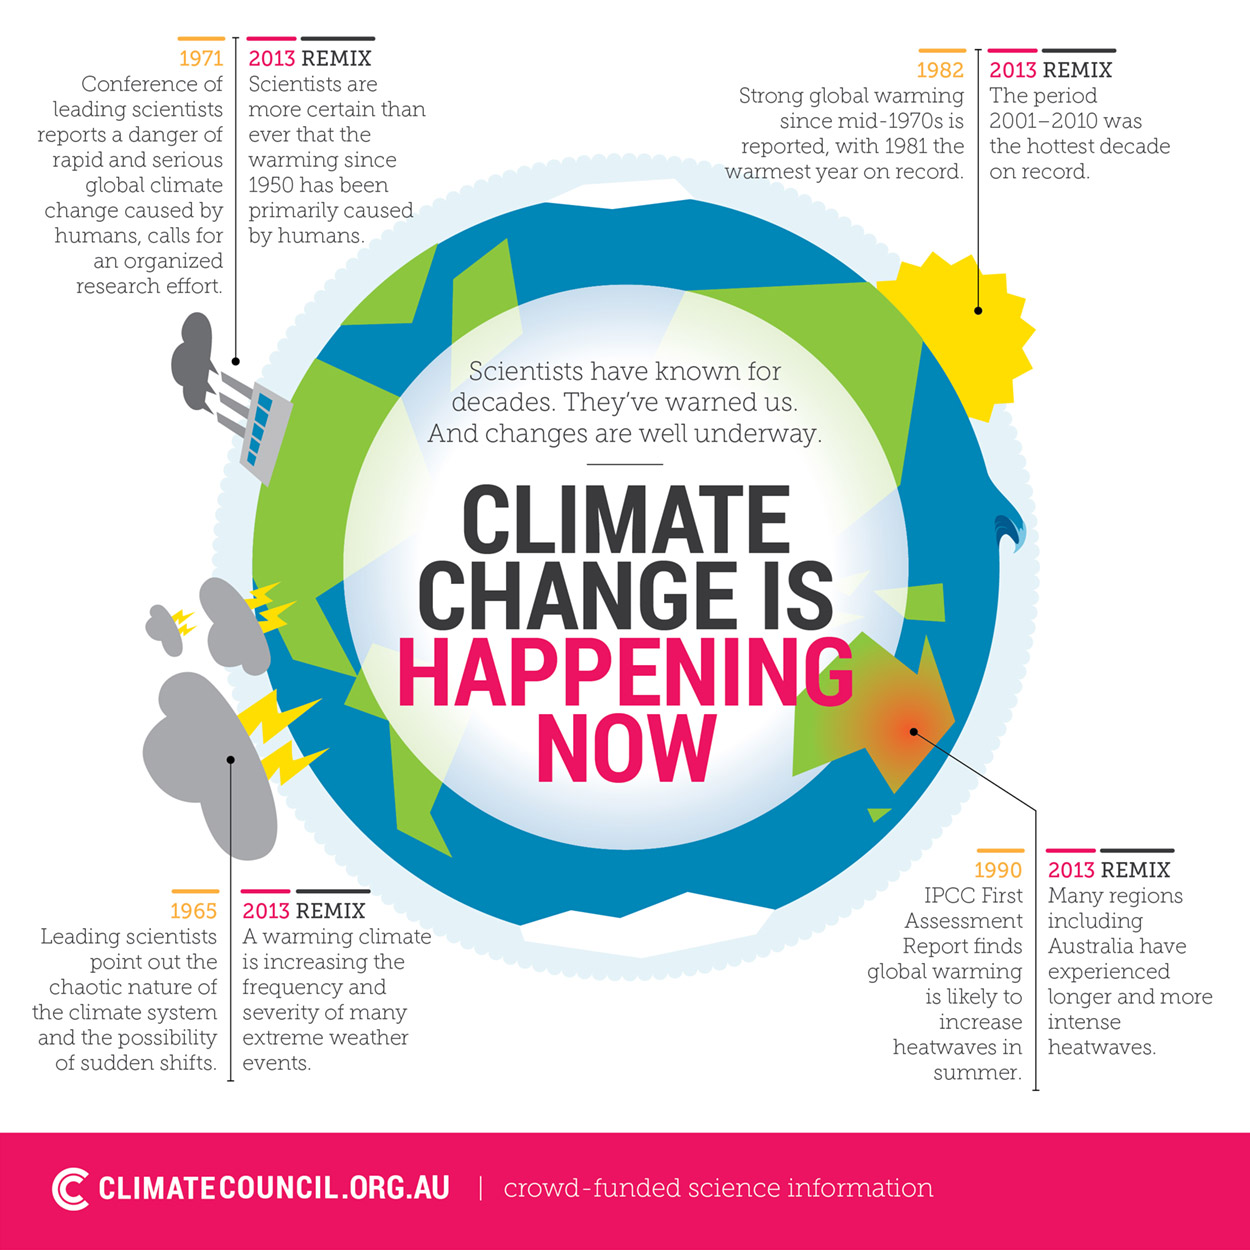 climate council summary of ipcc climate report nsw